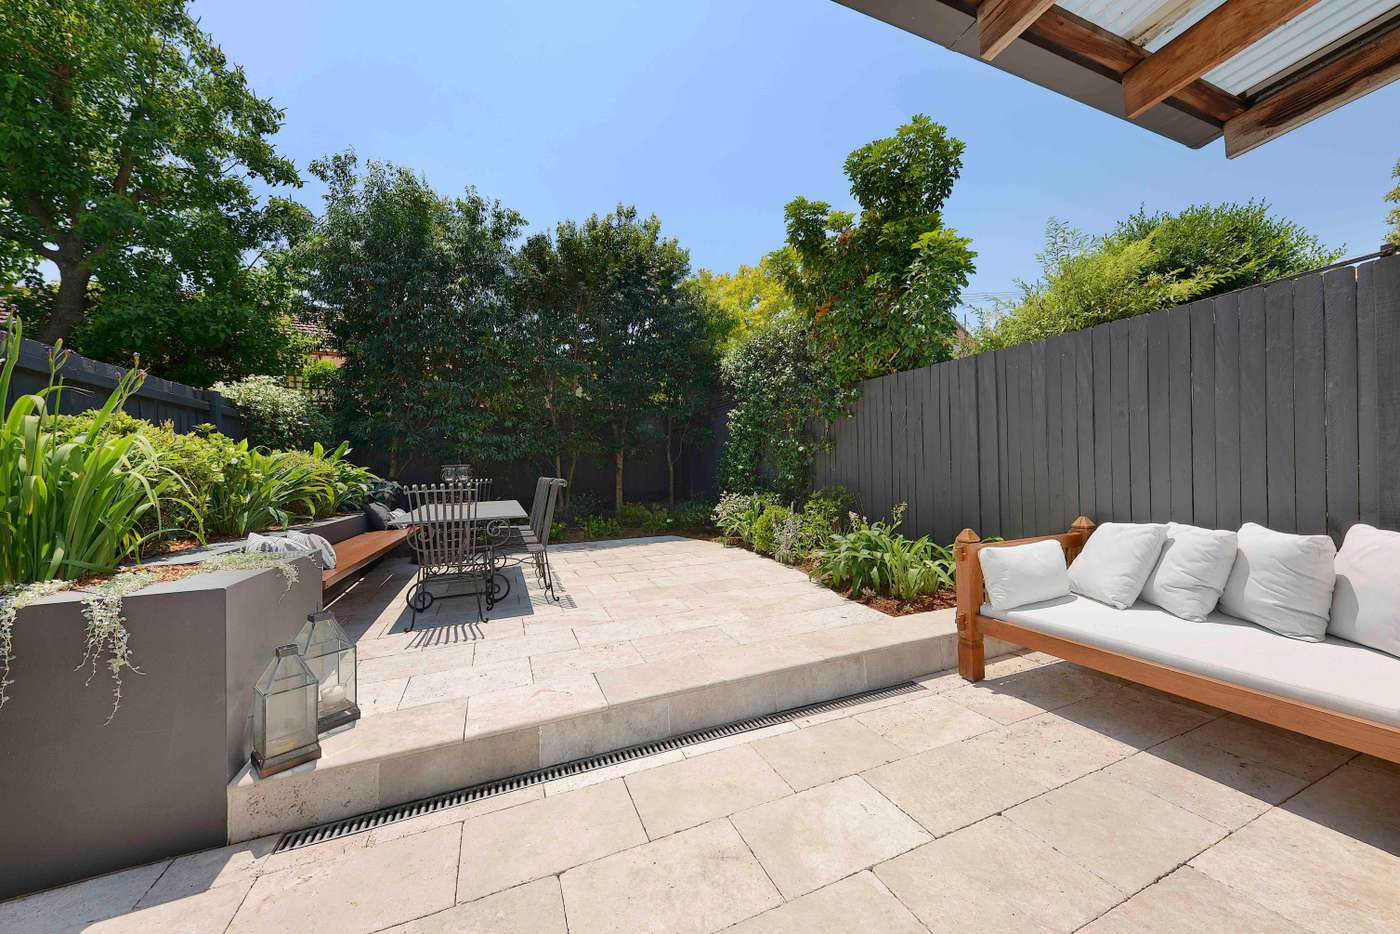 Main view of Homely house listing, 177 Perouse Road, Randwick, NSW 2031